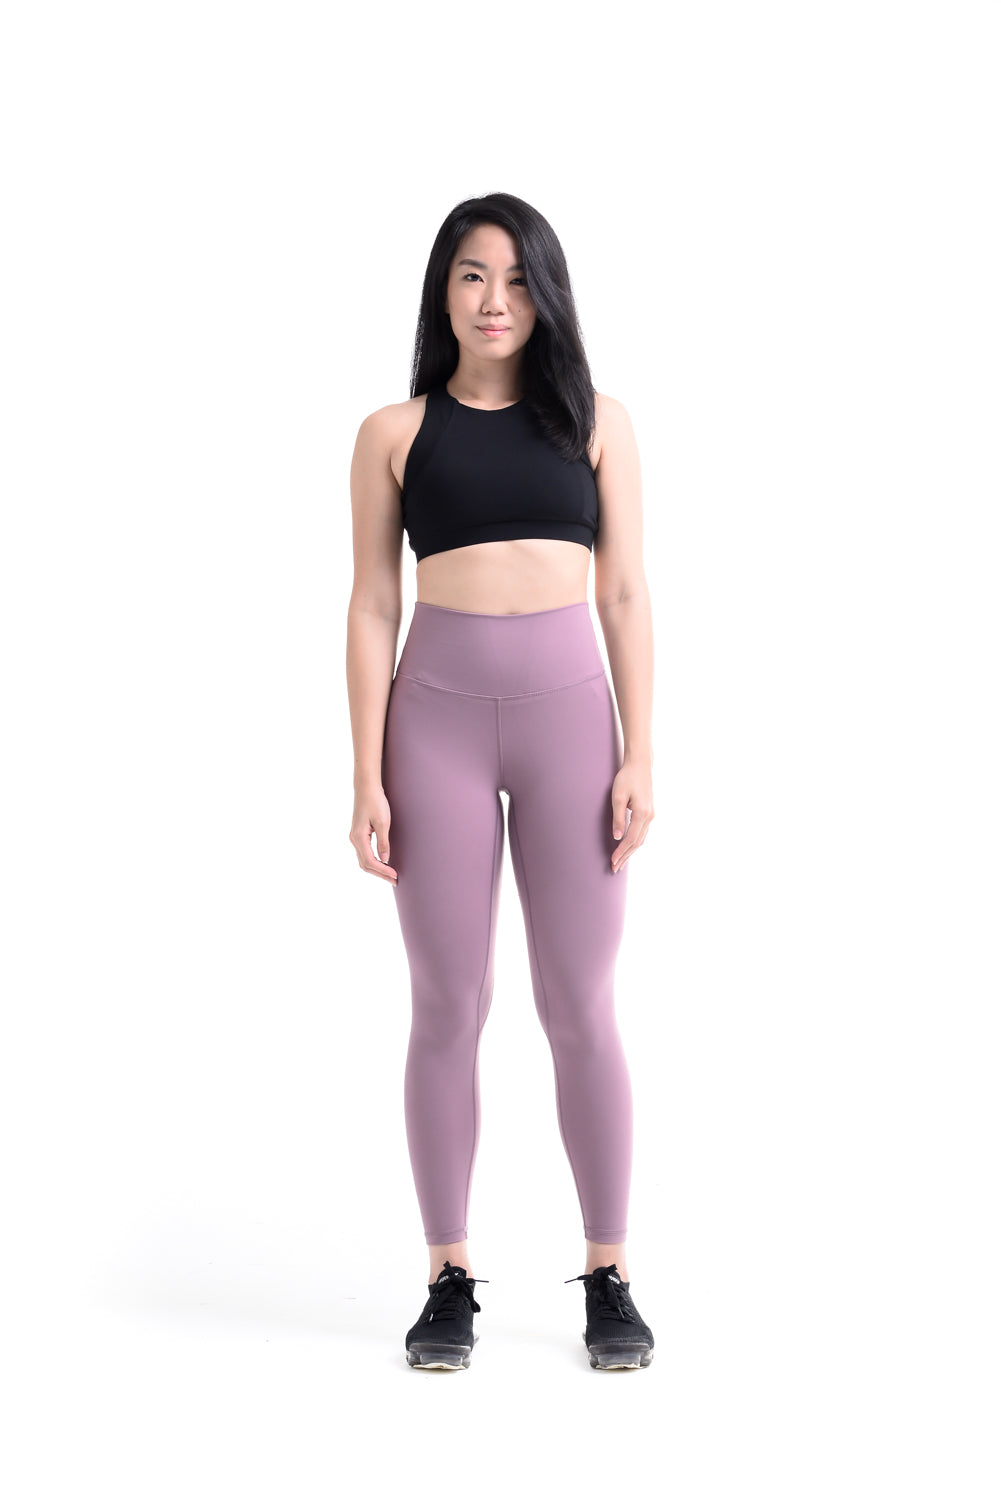 MKLZ FUSE II Leggings Yoga Pants Activewear Athleisure Nike Adidas Lululemon Alo Lorna Jane Alo Yogi Tights Malaysia Gymshark Ivy Park PE Nation Purple